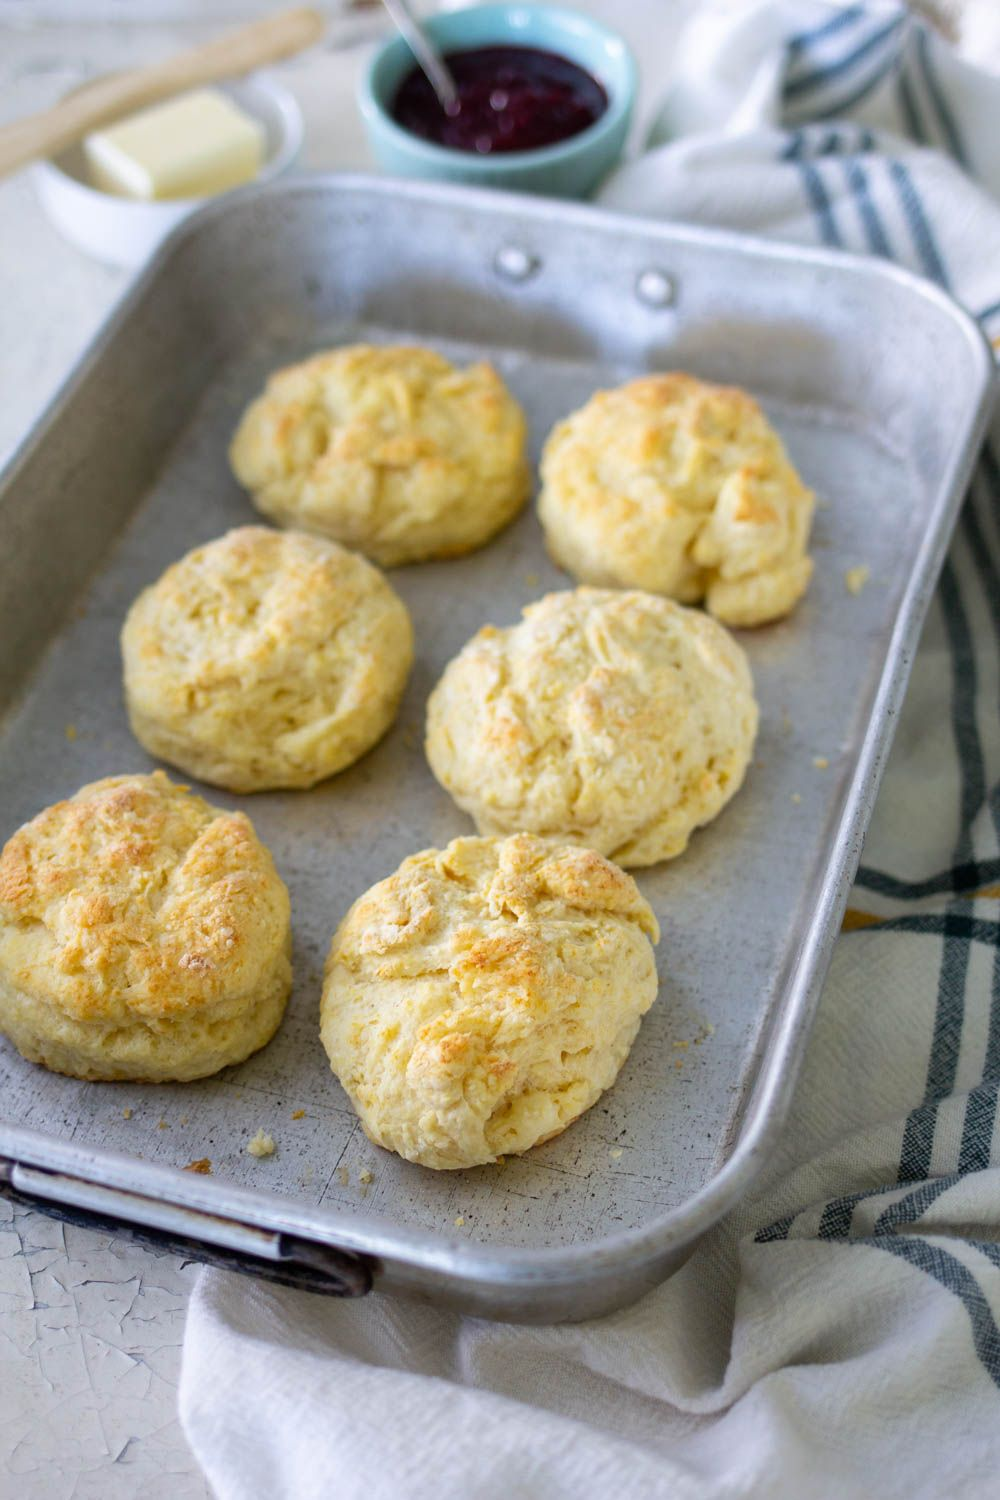 Buttermilk Biscuits A Bountiful Kitchen In 2020 Buttermilk Biscuits Biscuit Recipe Biscuits